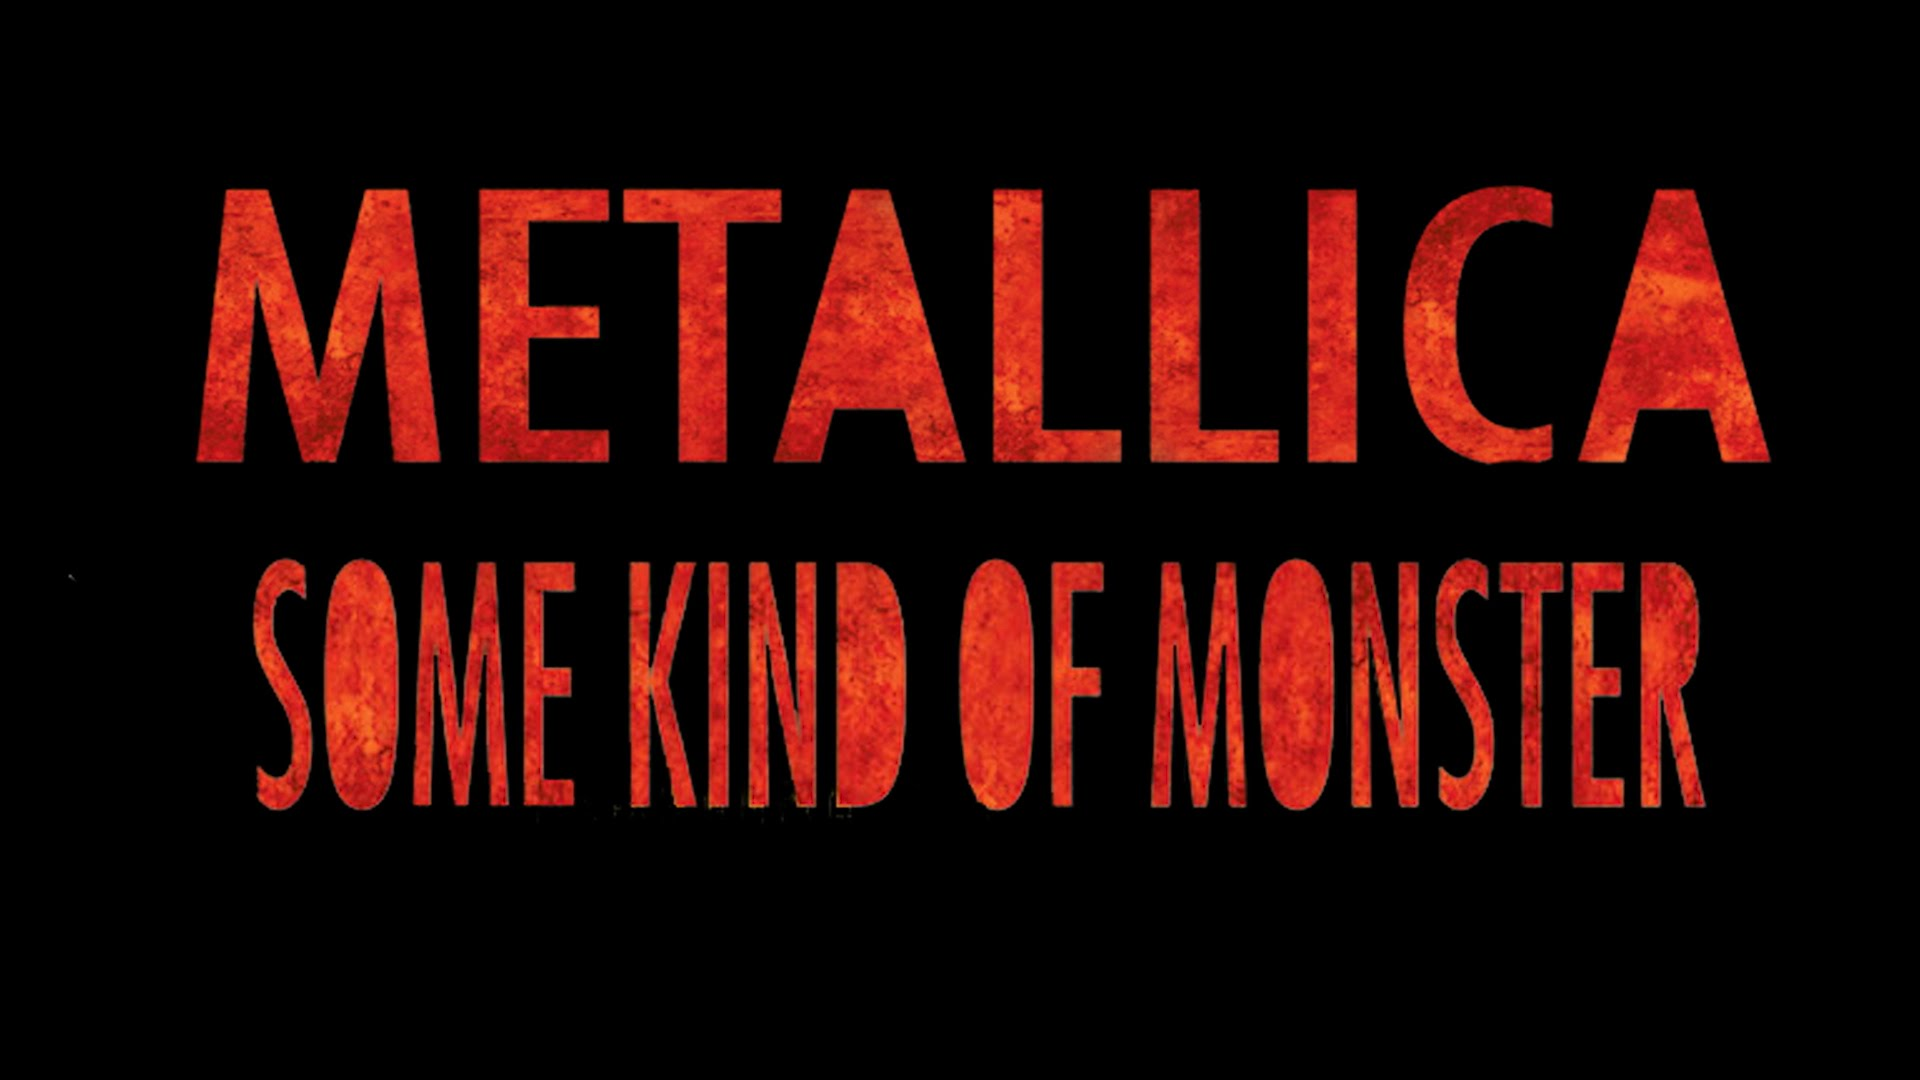 Metallica Some Kind of Monster (DVD Trailer)